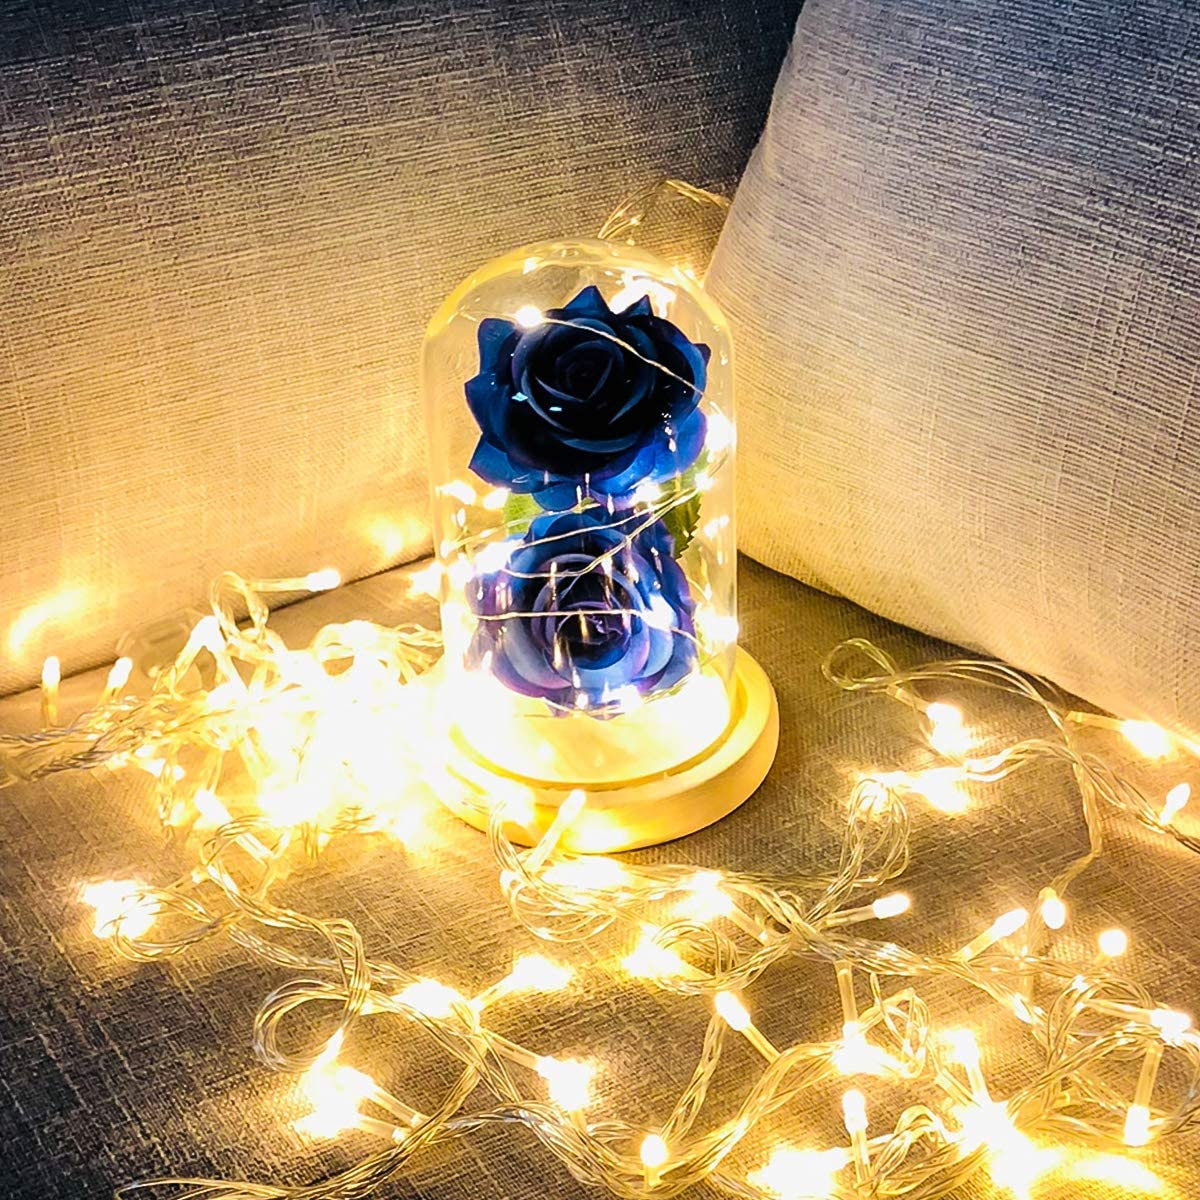 Rose Flower in Glass Dome w//LED Fairy String Lights Gift for her in Birthday Wedding Valentines Day,Mothers Day,Anniversary Blue